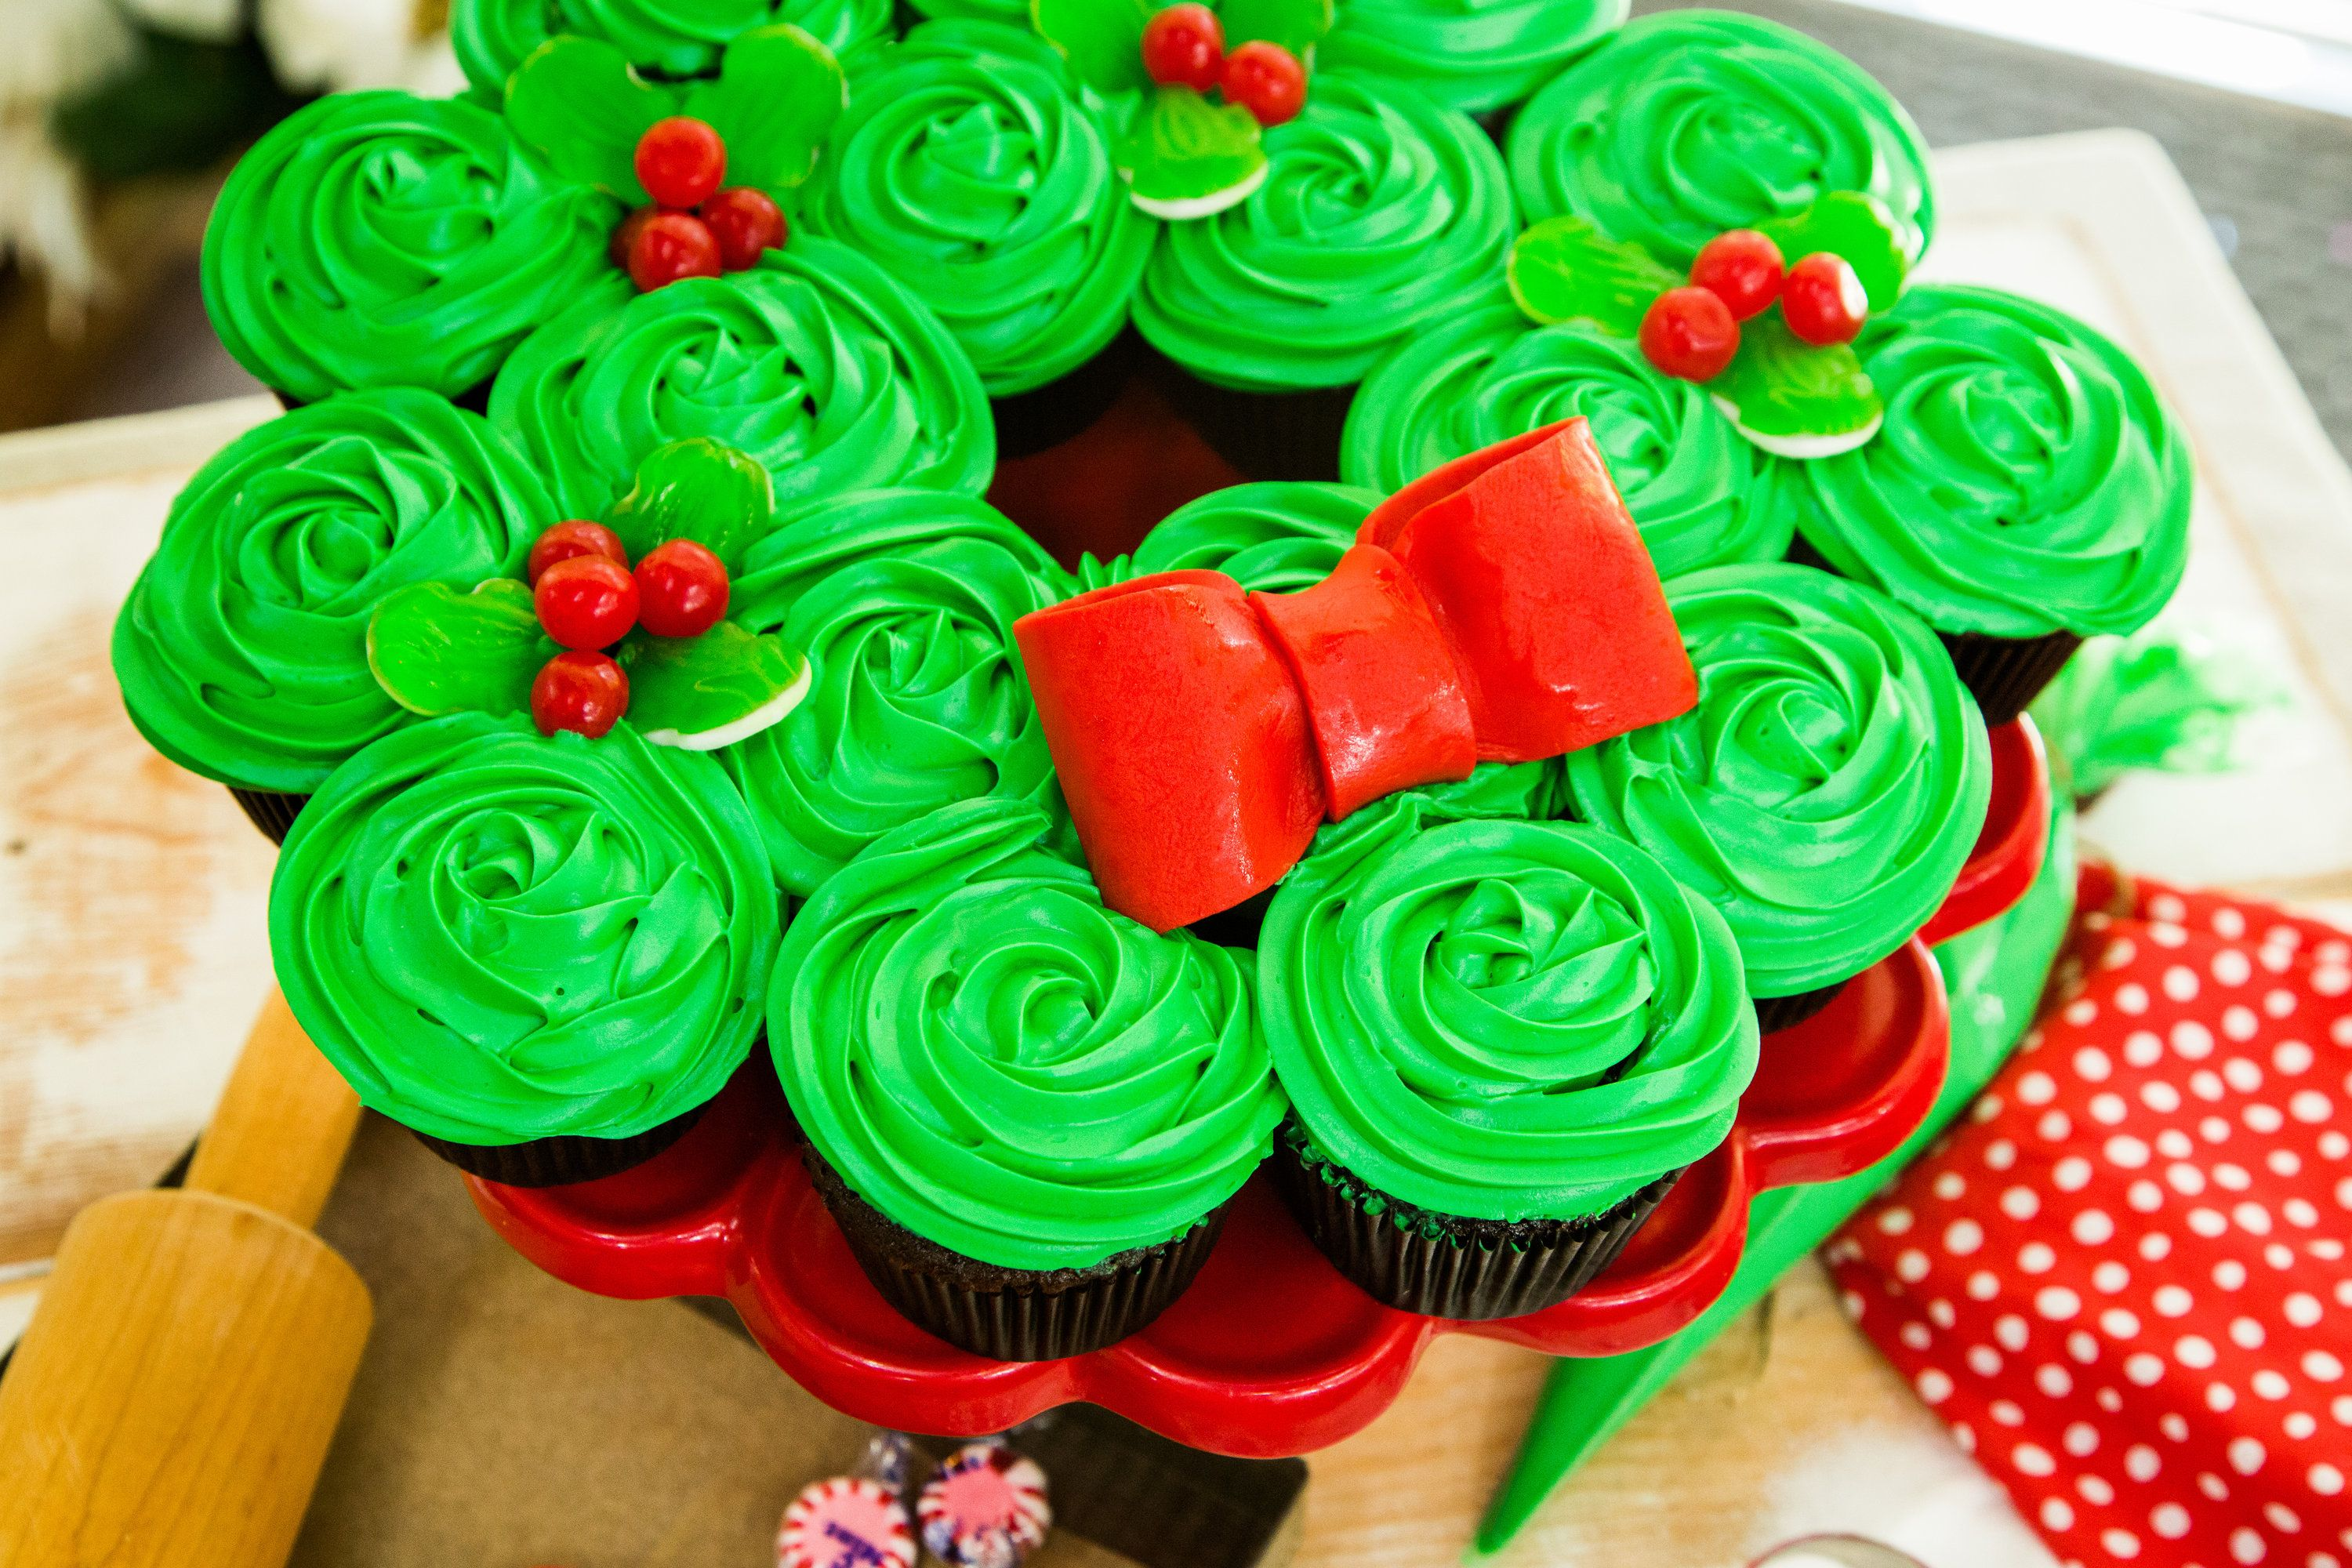 Christmas Wreath Cupcakes By Pastry Chef Elise Strachan - Recipe